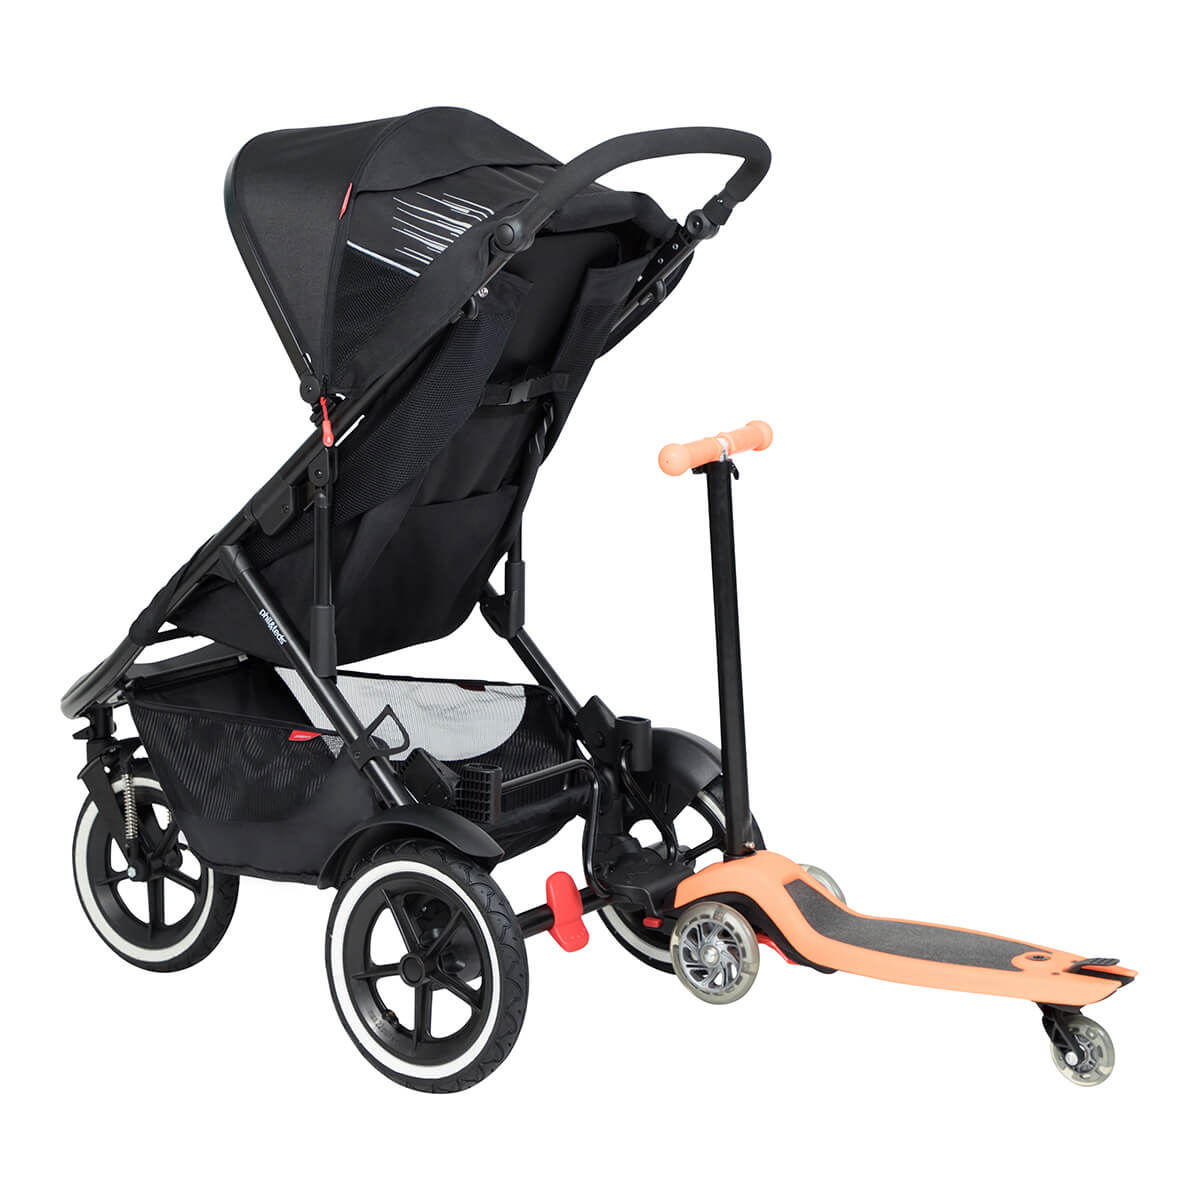 https://cdn.accentuate.io/4509866524769/19793940119722/philteds-sport-buggy-with-freerider-stroller-board-in-rear-v1626485301157.jpg?1200x1200